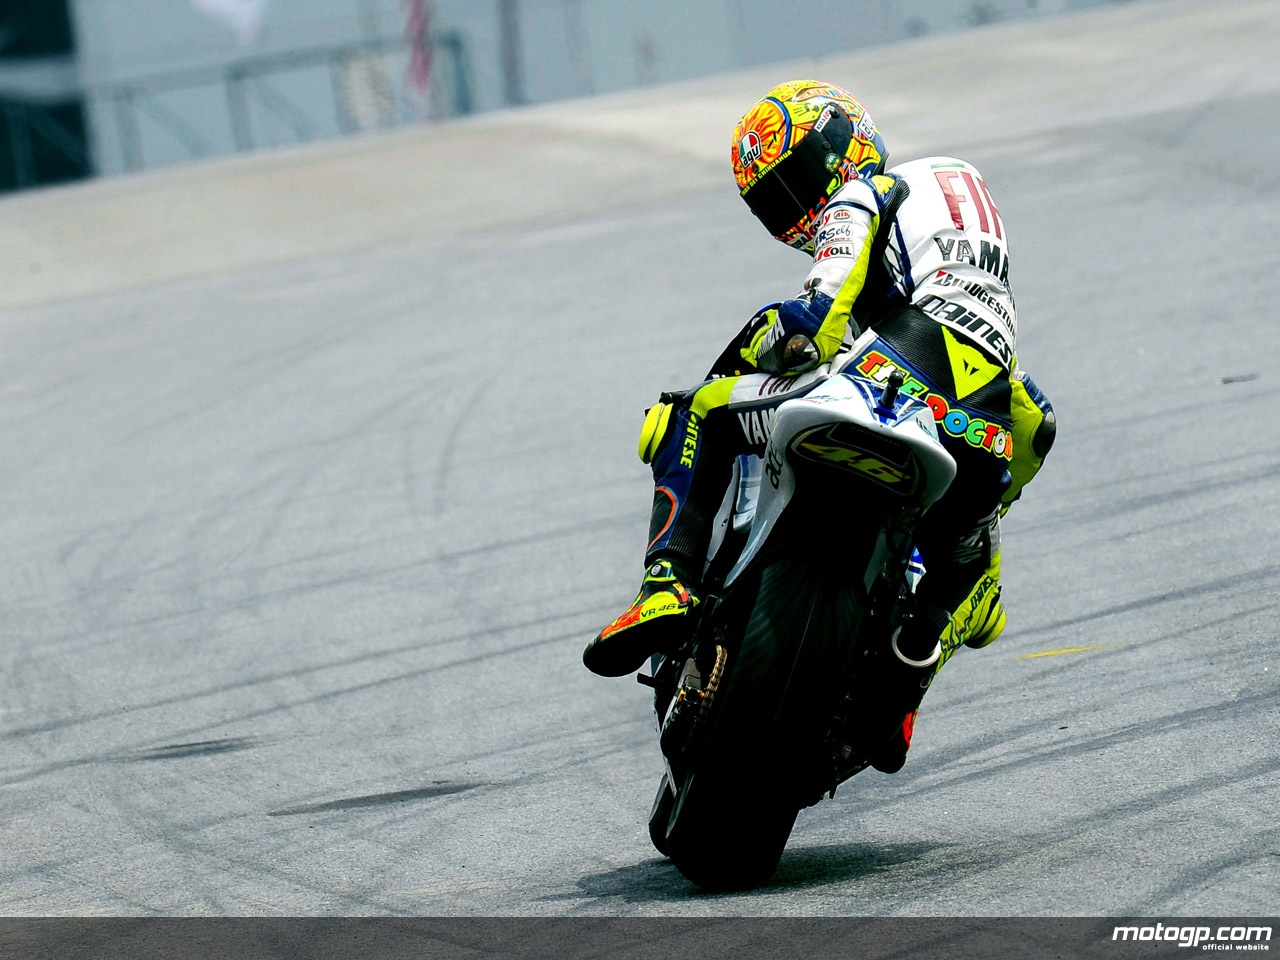 Valentino Rossi Photo Shoot - Valentino Rossi Photo Shoot